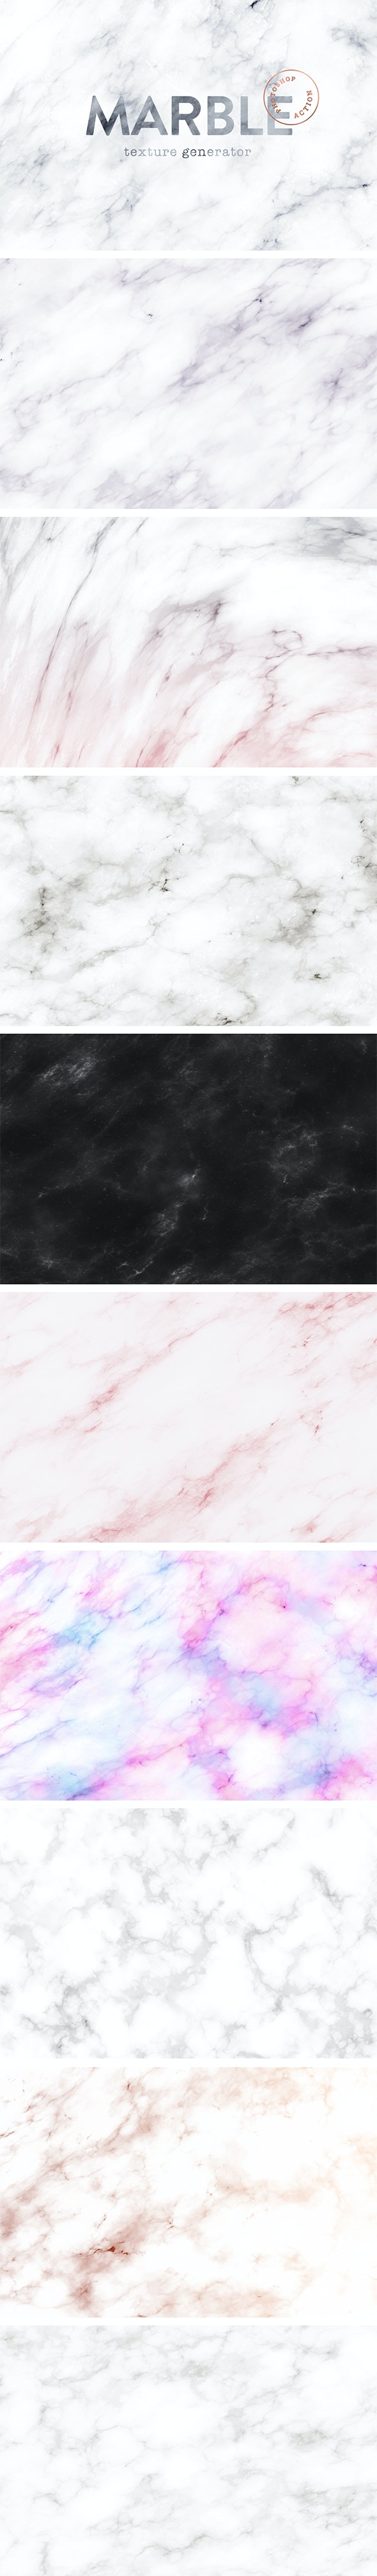 Marble Texture Generator Photoshop Action - Utilities Actions